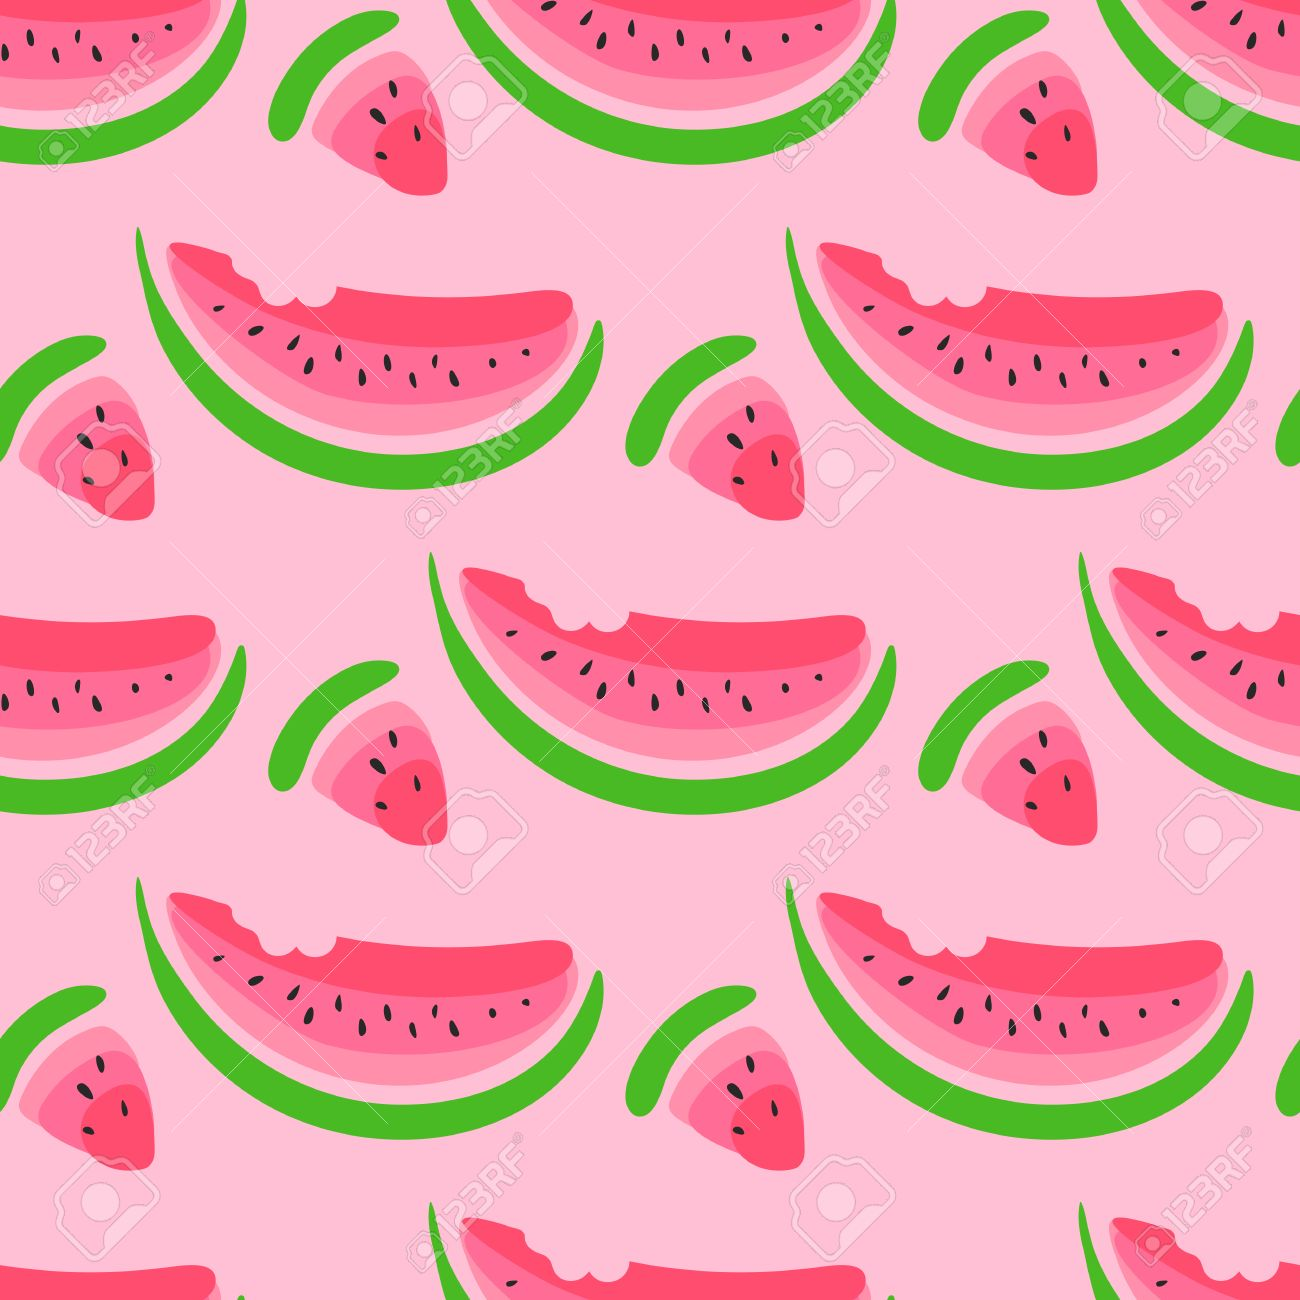 Seamless Wallpaper Pattern With Watermelon Slices Royalty Free